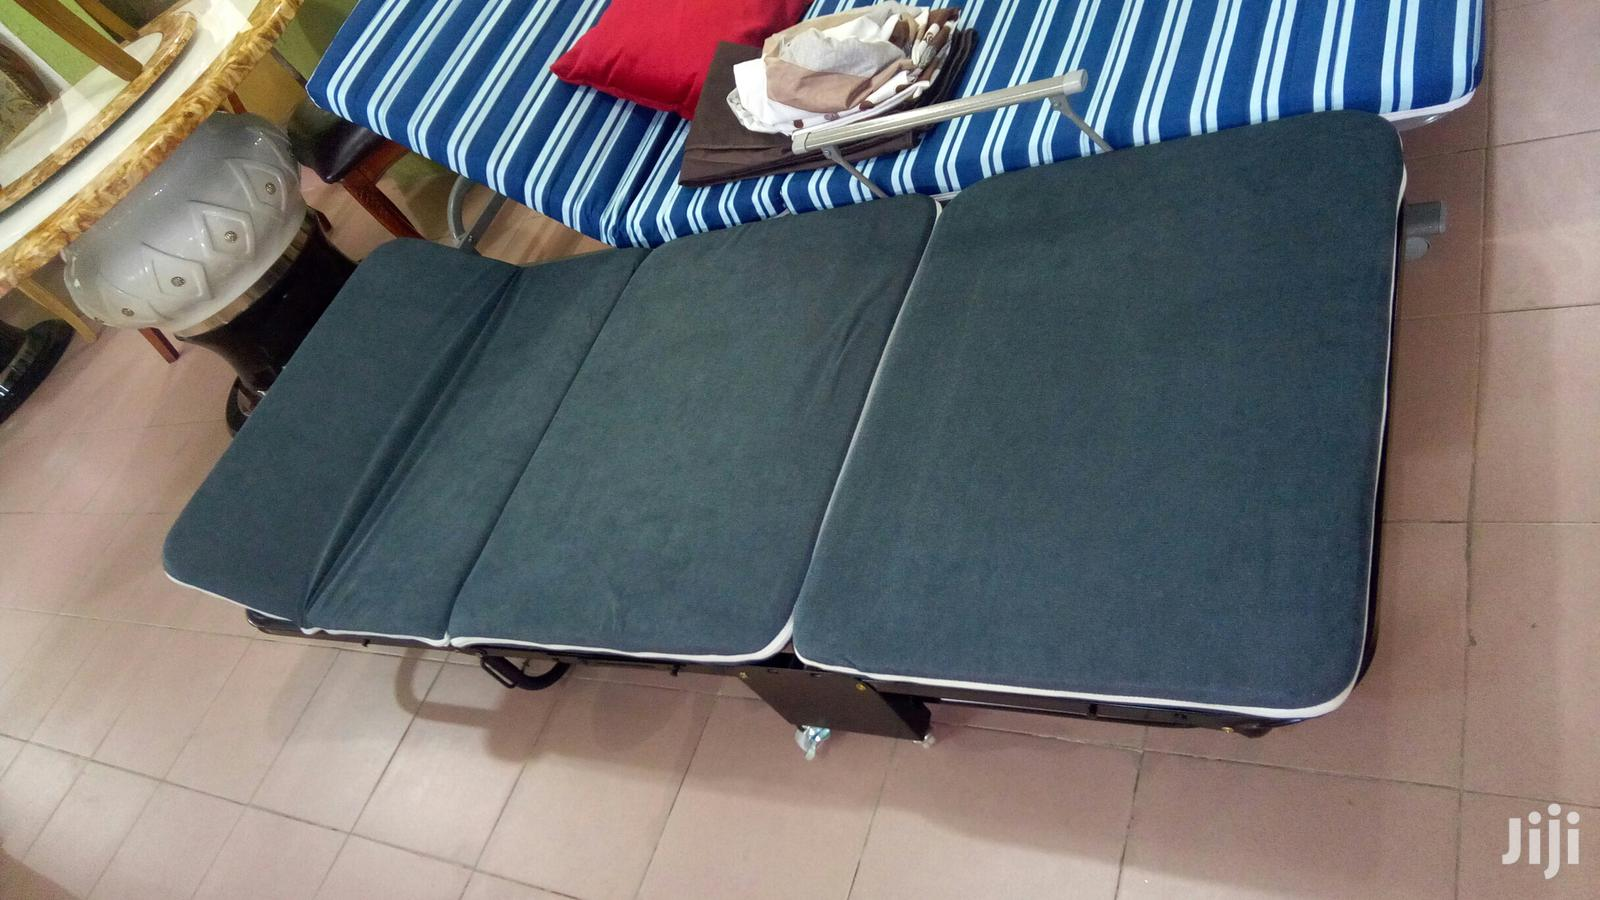 New Camp Bed Foldable